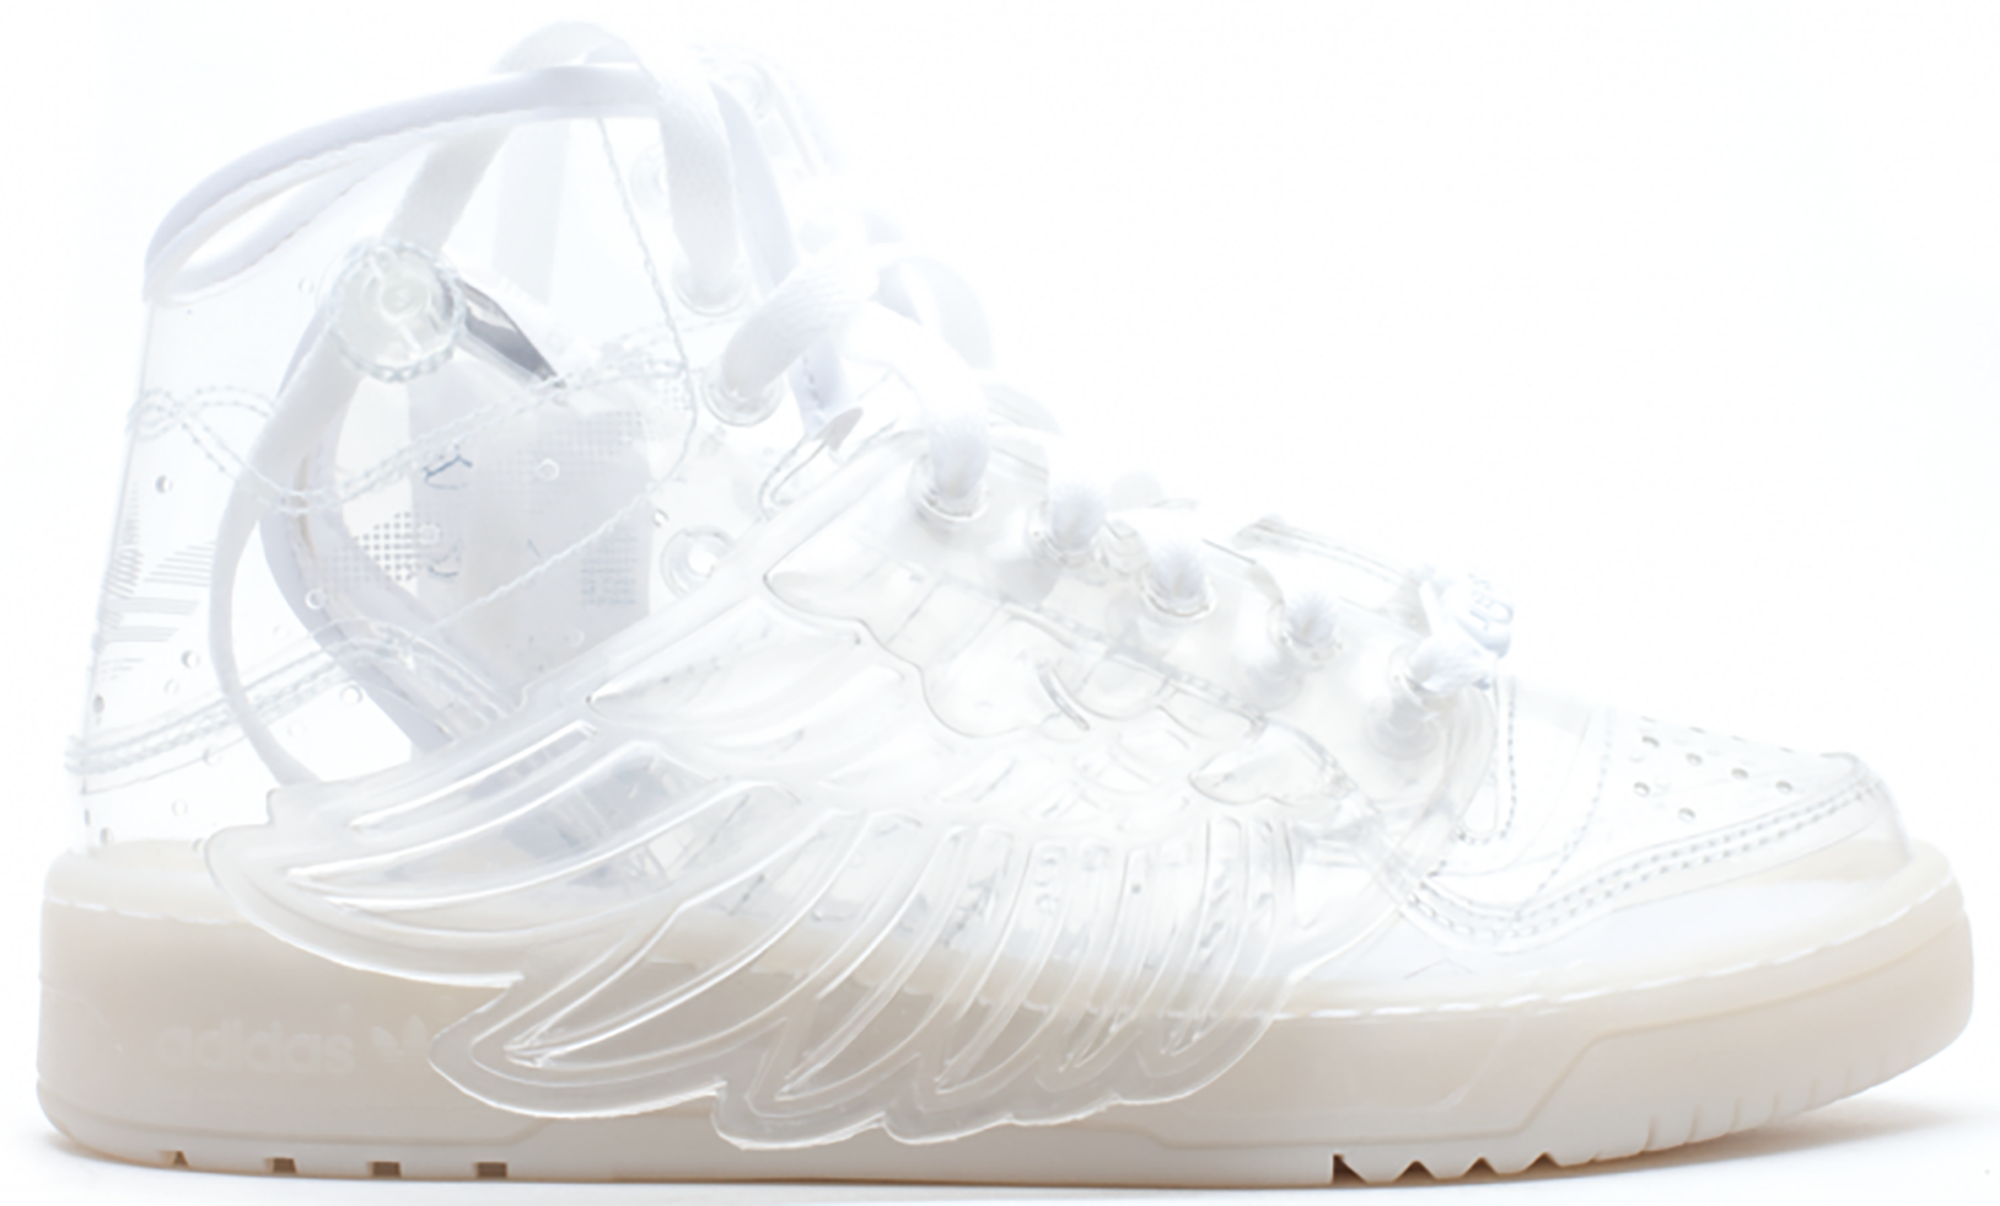 adidas wings transparent - 59% remise